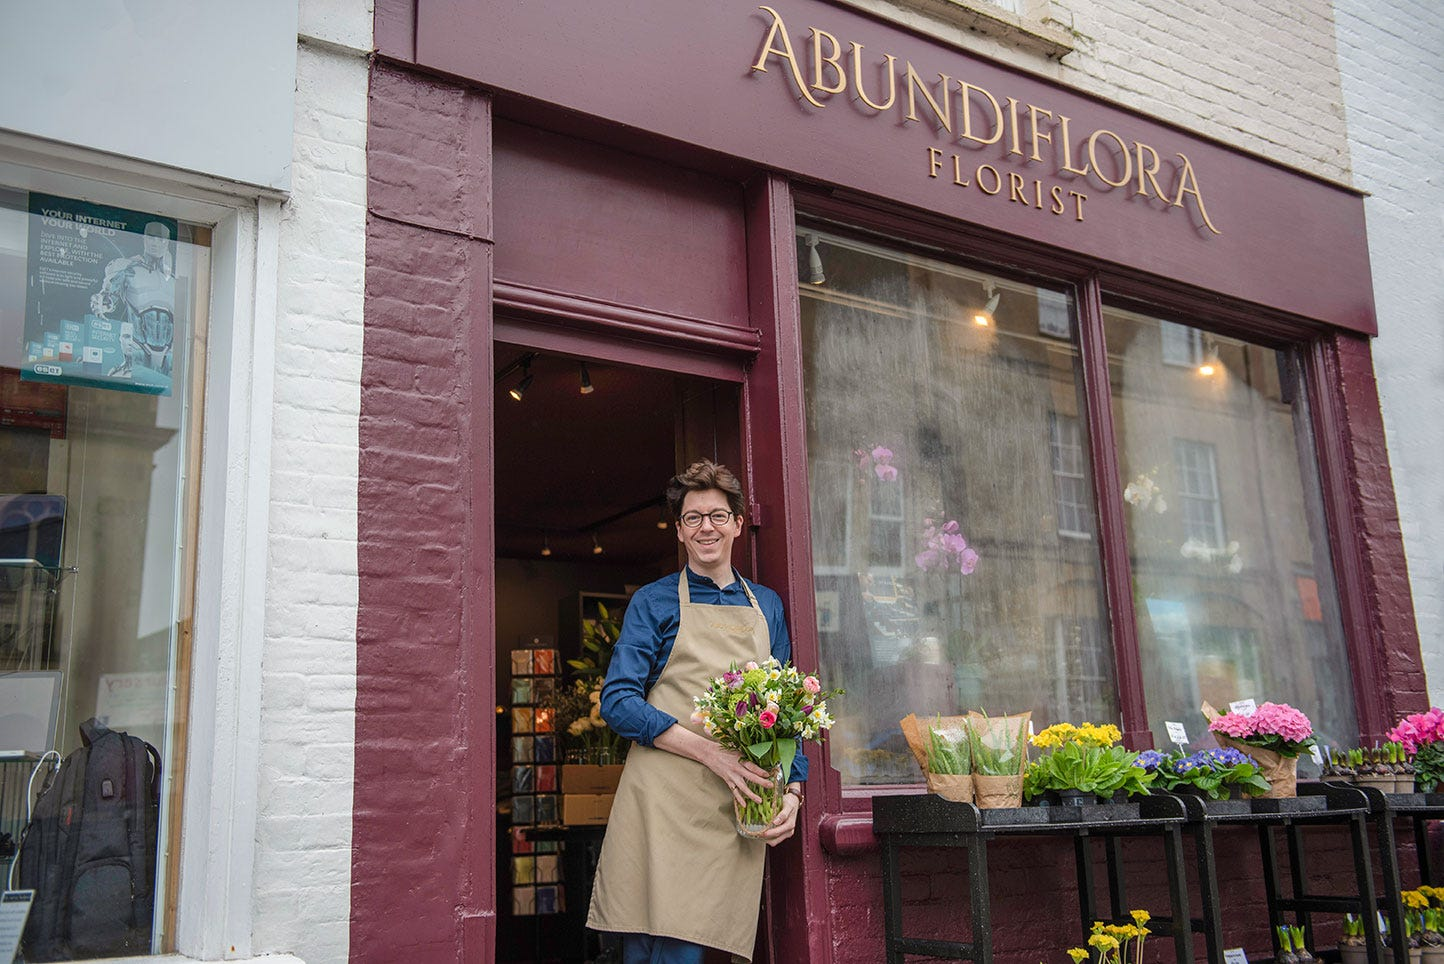 Jake outside his florist shop, Abundiflora